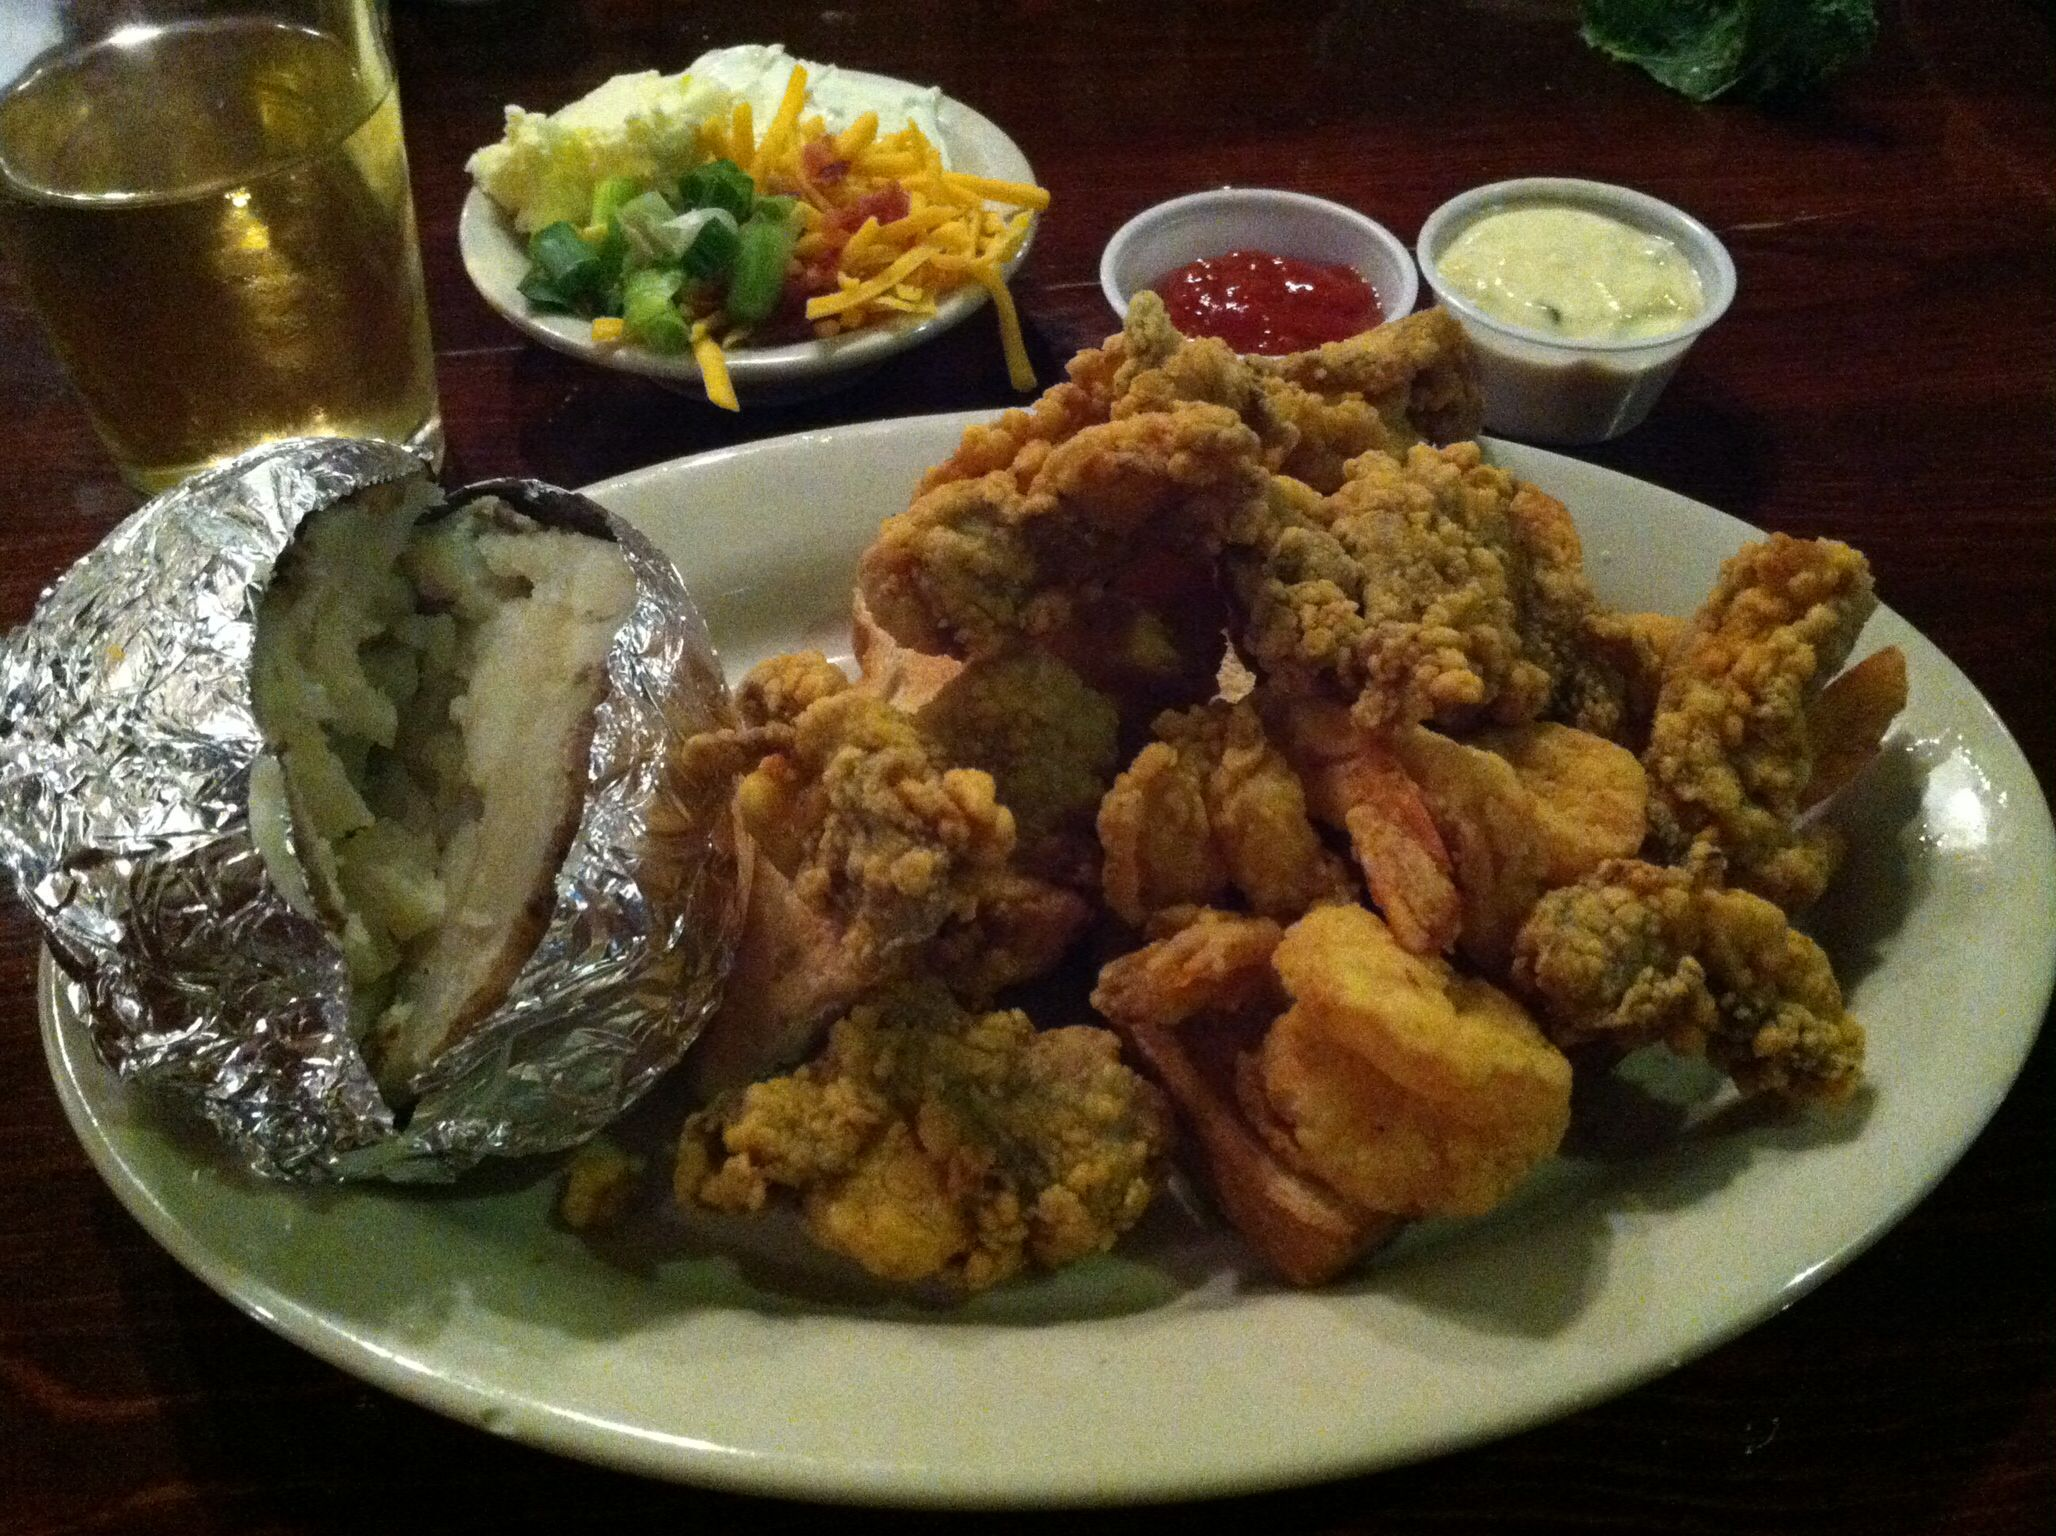 Vera S Seafood Restaurant In Slidell Louisiana Fried Oyster And Shrimp Plate 4 5 14